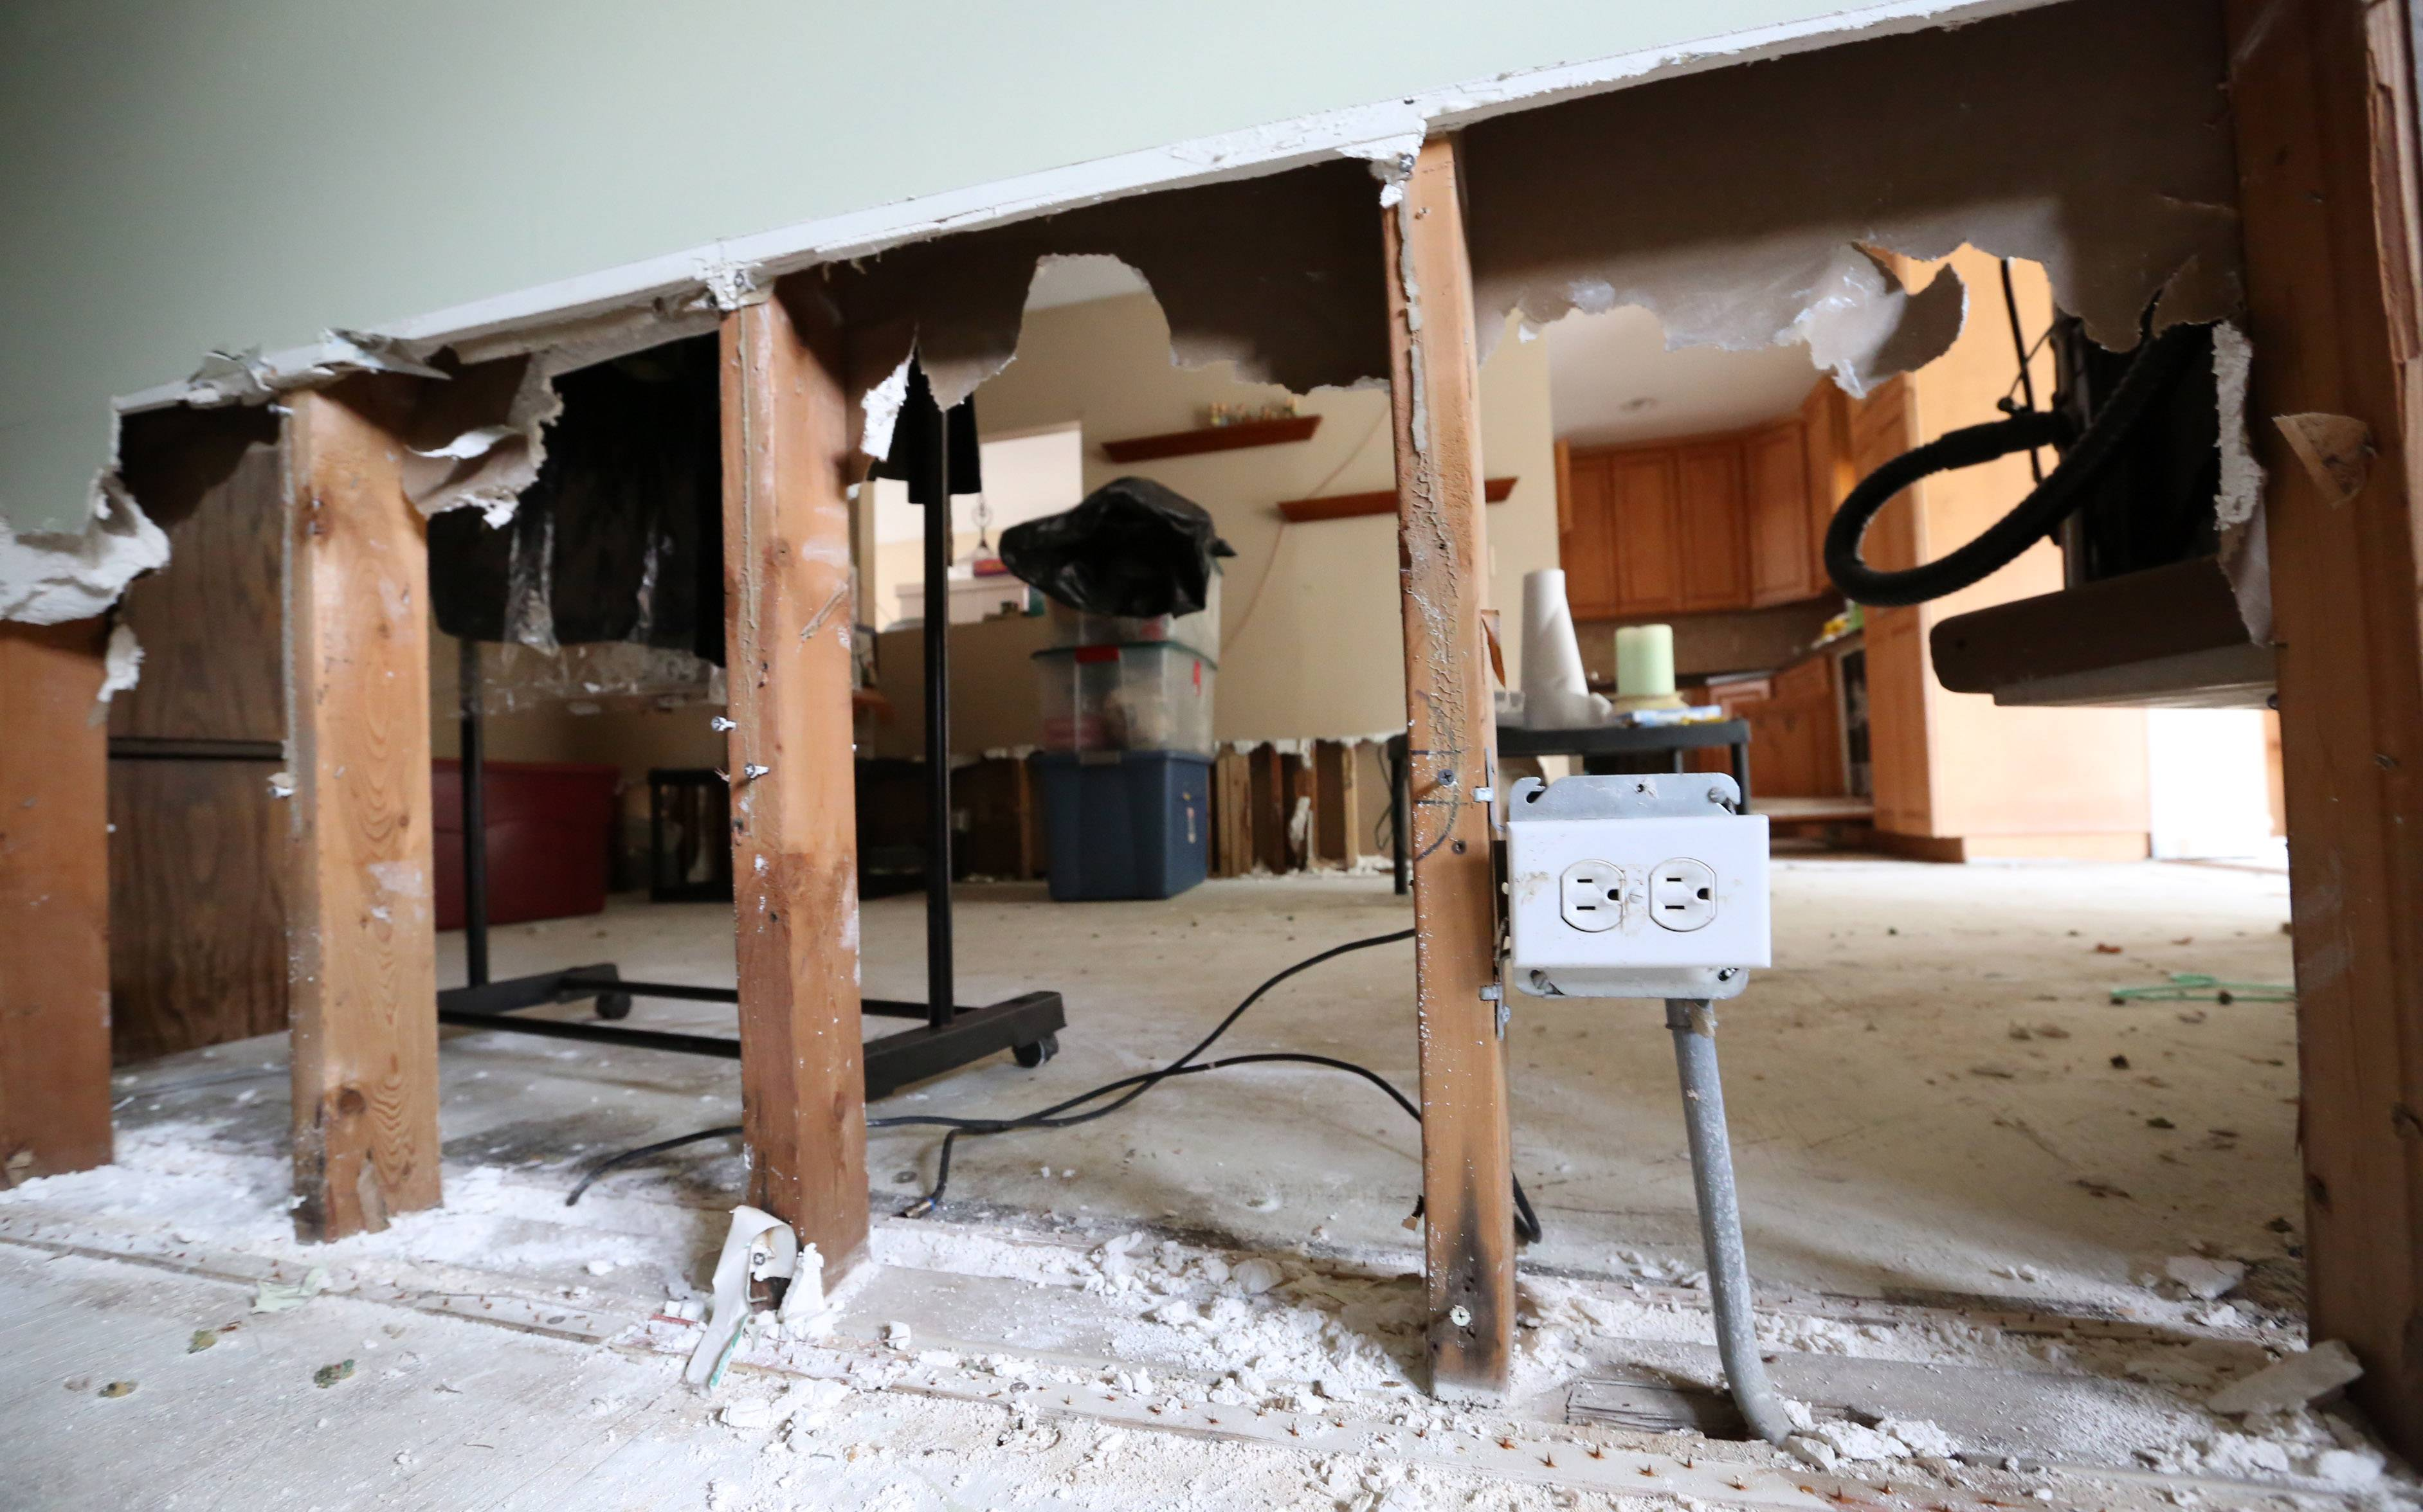 Almost three feet of drywall has been removed from all the rooms in Heather and Matthew Roppel's home in Des Plaines as a result of April 2013 floods.